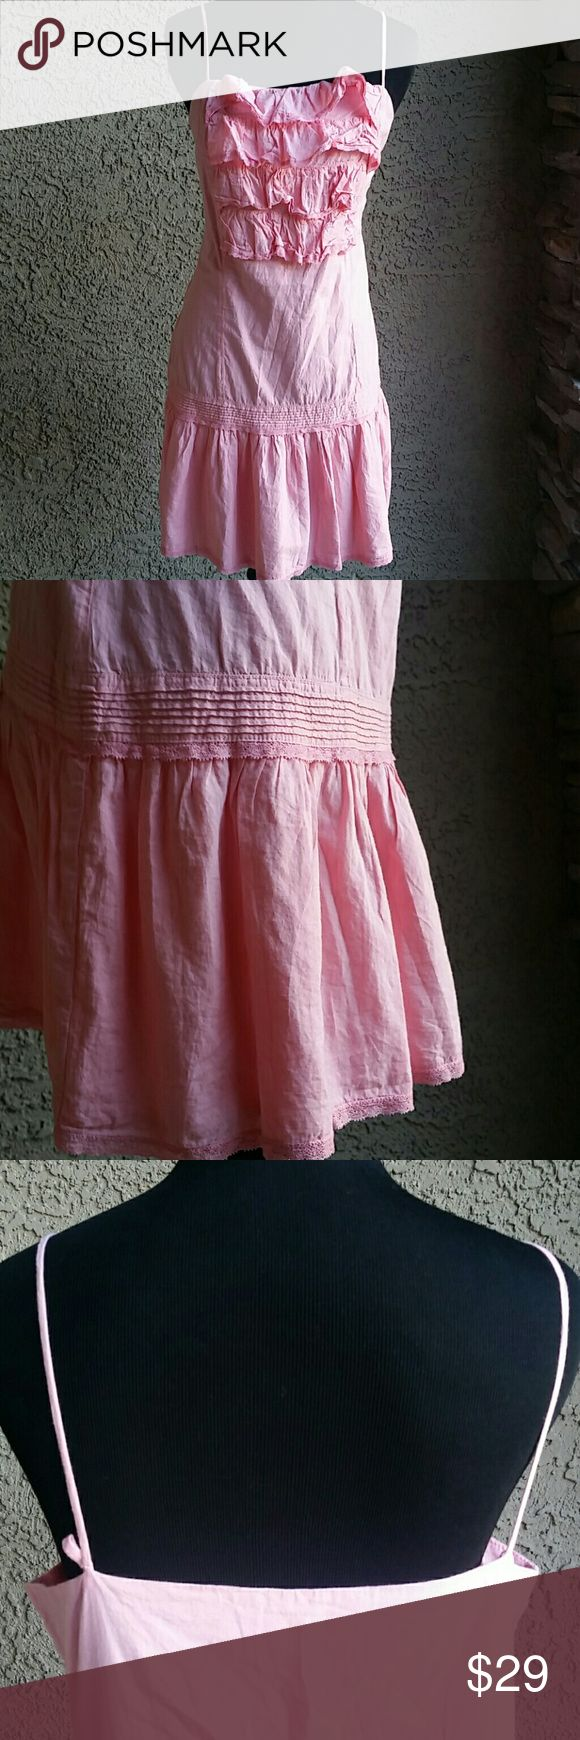 """Women's Juicy Couture Dress Sz L Never worn. Juicy Couture Pink Ruffle Sun Dress. Sz L Slip on. Straps are NOT adjustable So pretty. Armpit to armpit: 18.5"""" Armpit to bottom: 24.5"""" Back center to bottom: 24"""" Juicy Couture Dresses"""